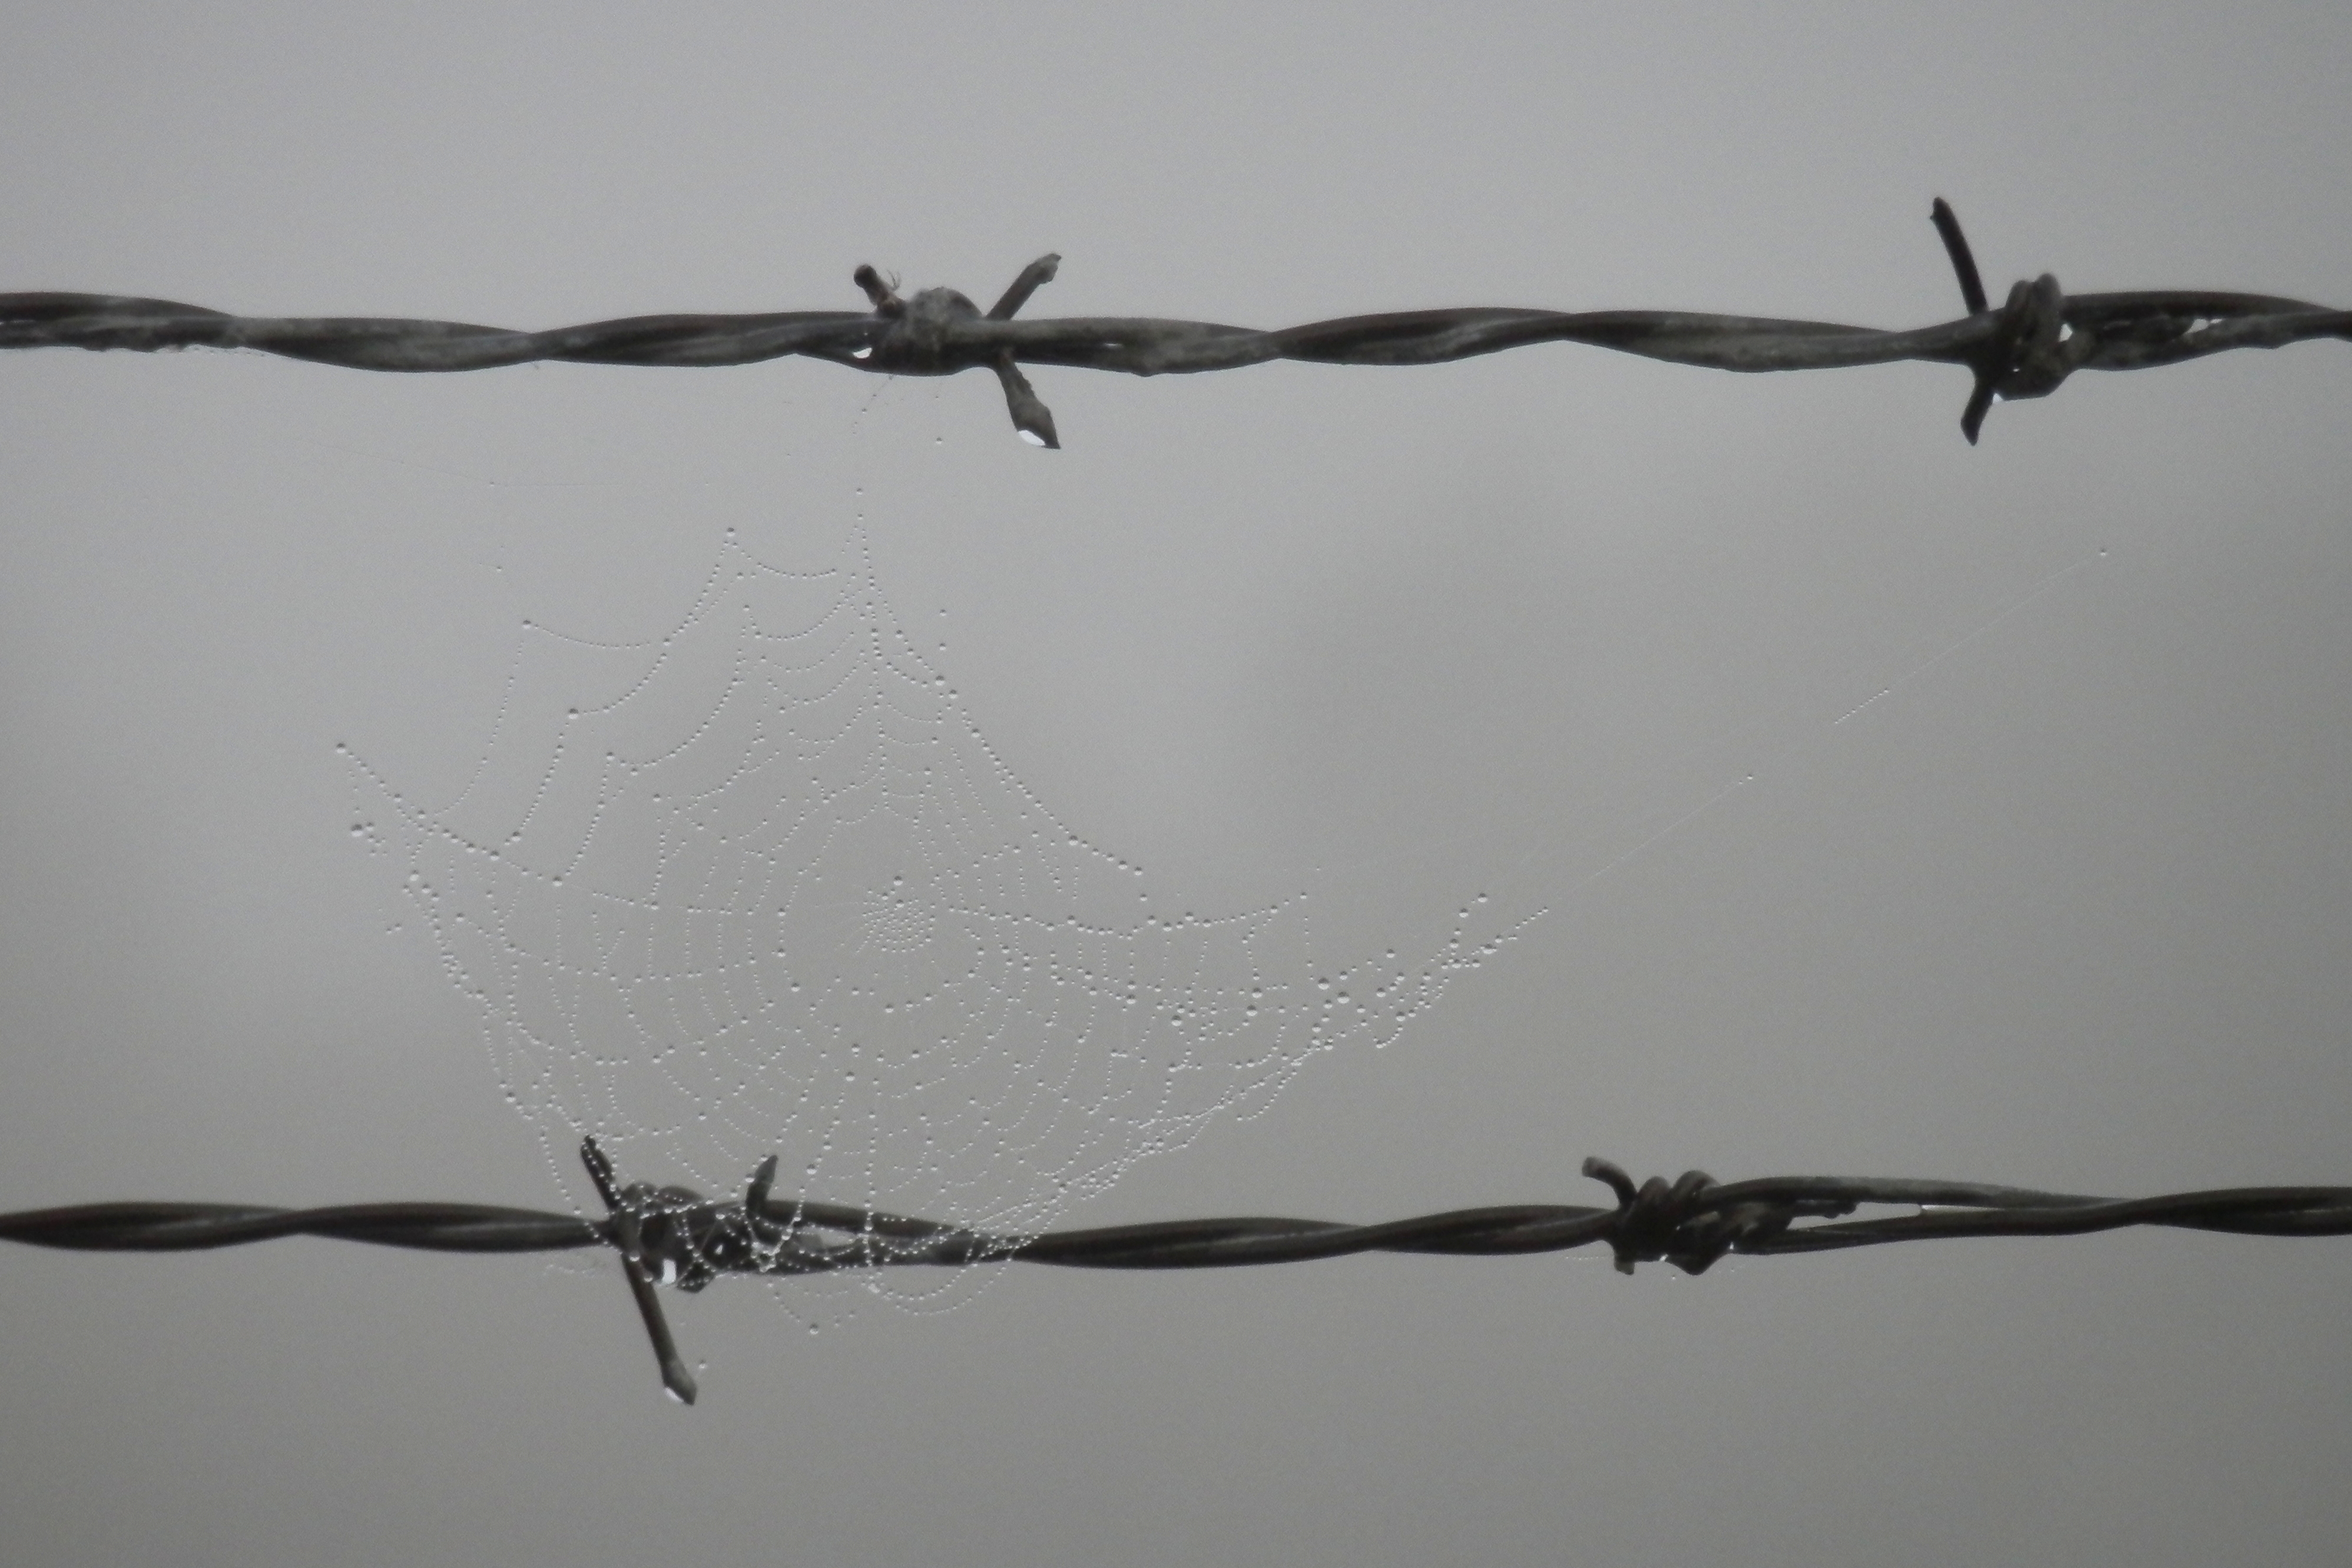 File:Spider Web on Barbed Wire - Saskatoon 01.jpg - Wikimedia Commons